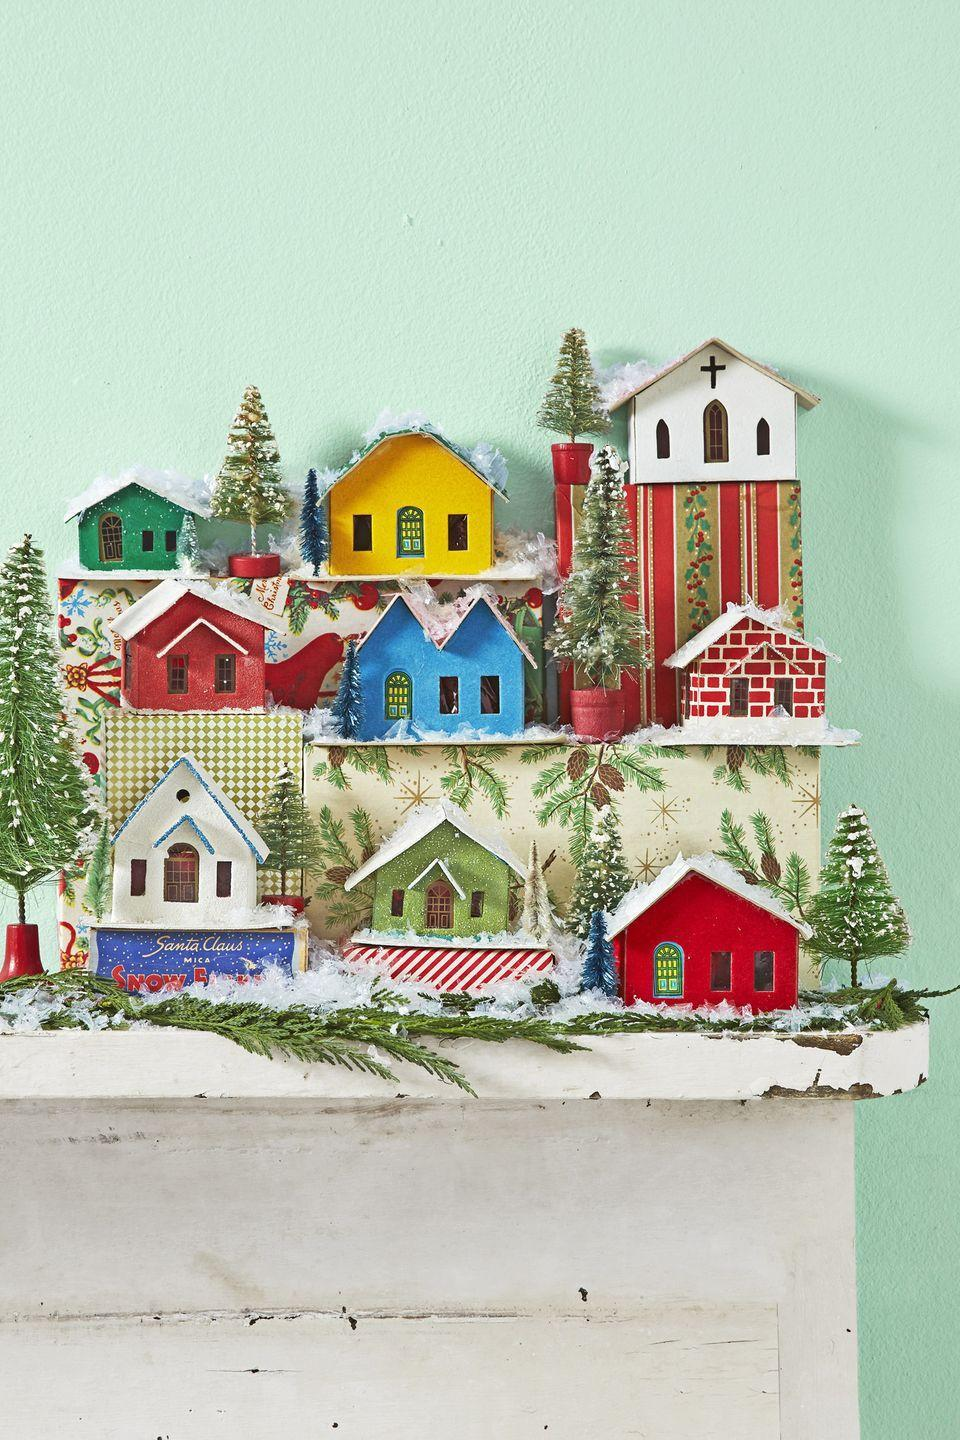 """<p>Ever wondered why these tiny, charming decorations are called """"Putz houses""""? The name actually comes from the German word """"putzen,"""" which means """"to decorate."""" Who would've thought? With or without that cute origin story though, these beauties are just the thing to place all over your home come December.</p><p><a class=""""link rapid-noclick-resp"""" href=""""https://go.redirectingat.com?id=74968X1596630&url=https%3A%2F%2Fwww.etsy.com%2Fmarket%2Fputz_houses&sref=https%3A%2F%2Fwww.countryliving.com%2Fhome-design%2Fdecorating-ideas%2Fadvice%2Fg1247%2Fholiday-decorating-1208%2F"""" rel=""""nofollow noopener"""" target=""""_blank"""" data-ylk=""""slk:SHOP PUTZ HOUSES"""">SHOP PUTZ HOUSES</a></p>"""